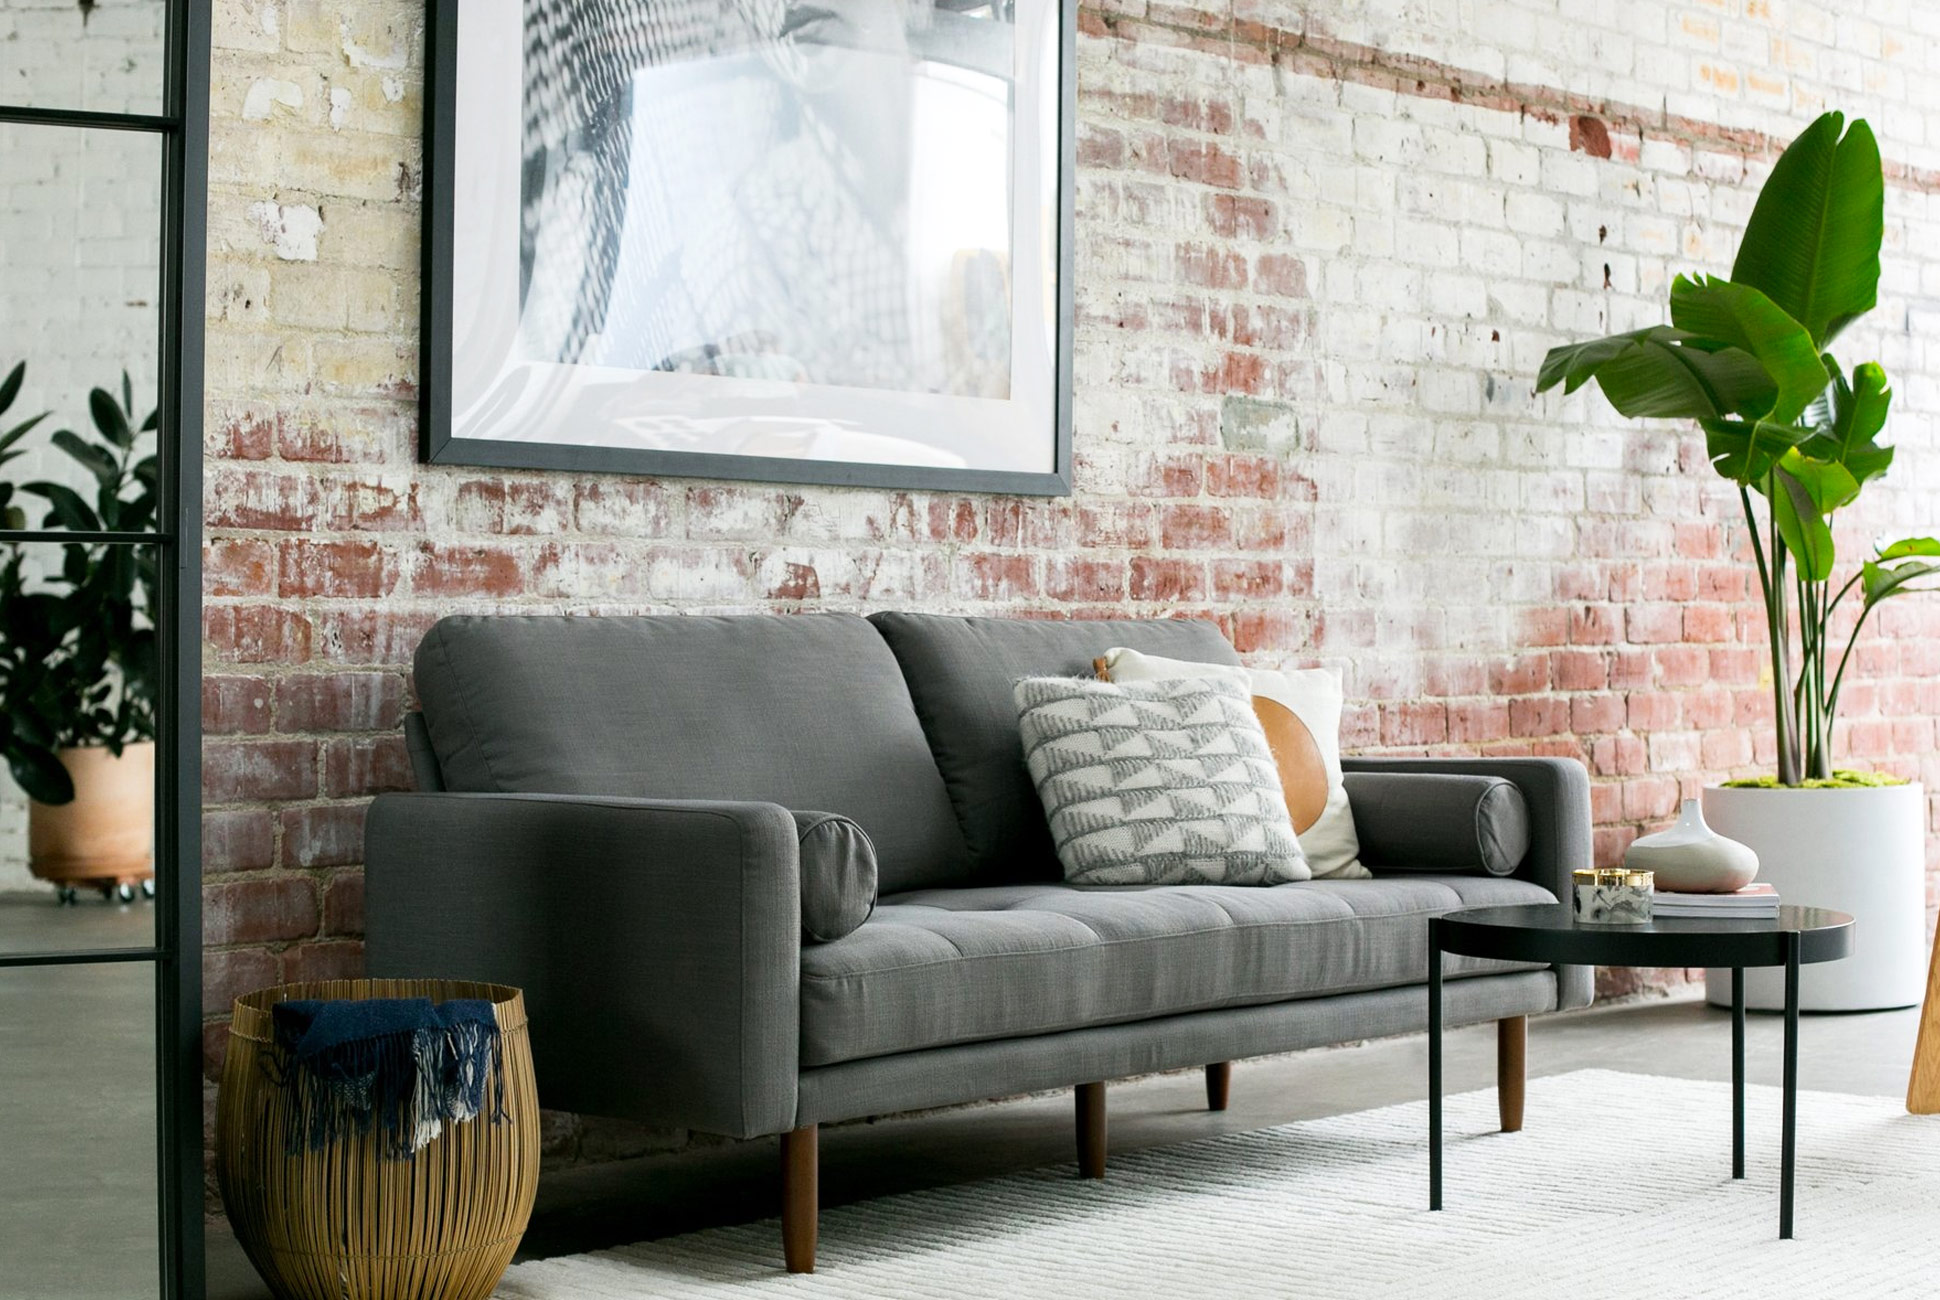 The 14 Best Sofas and Couches You Can Buy in 2018